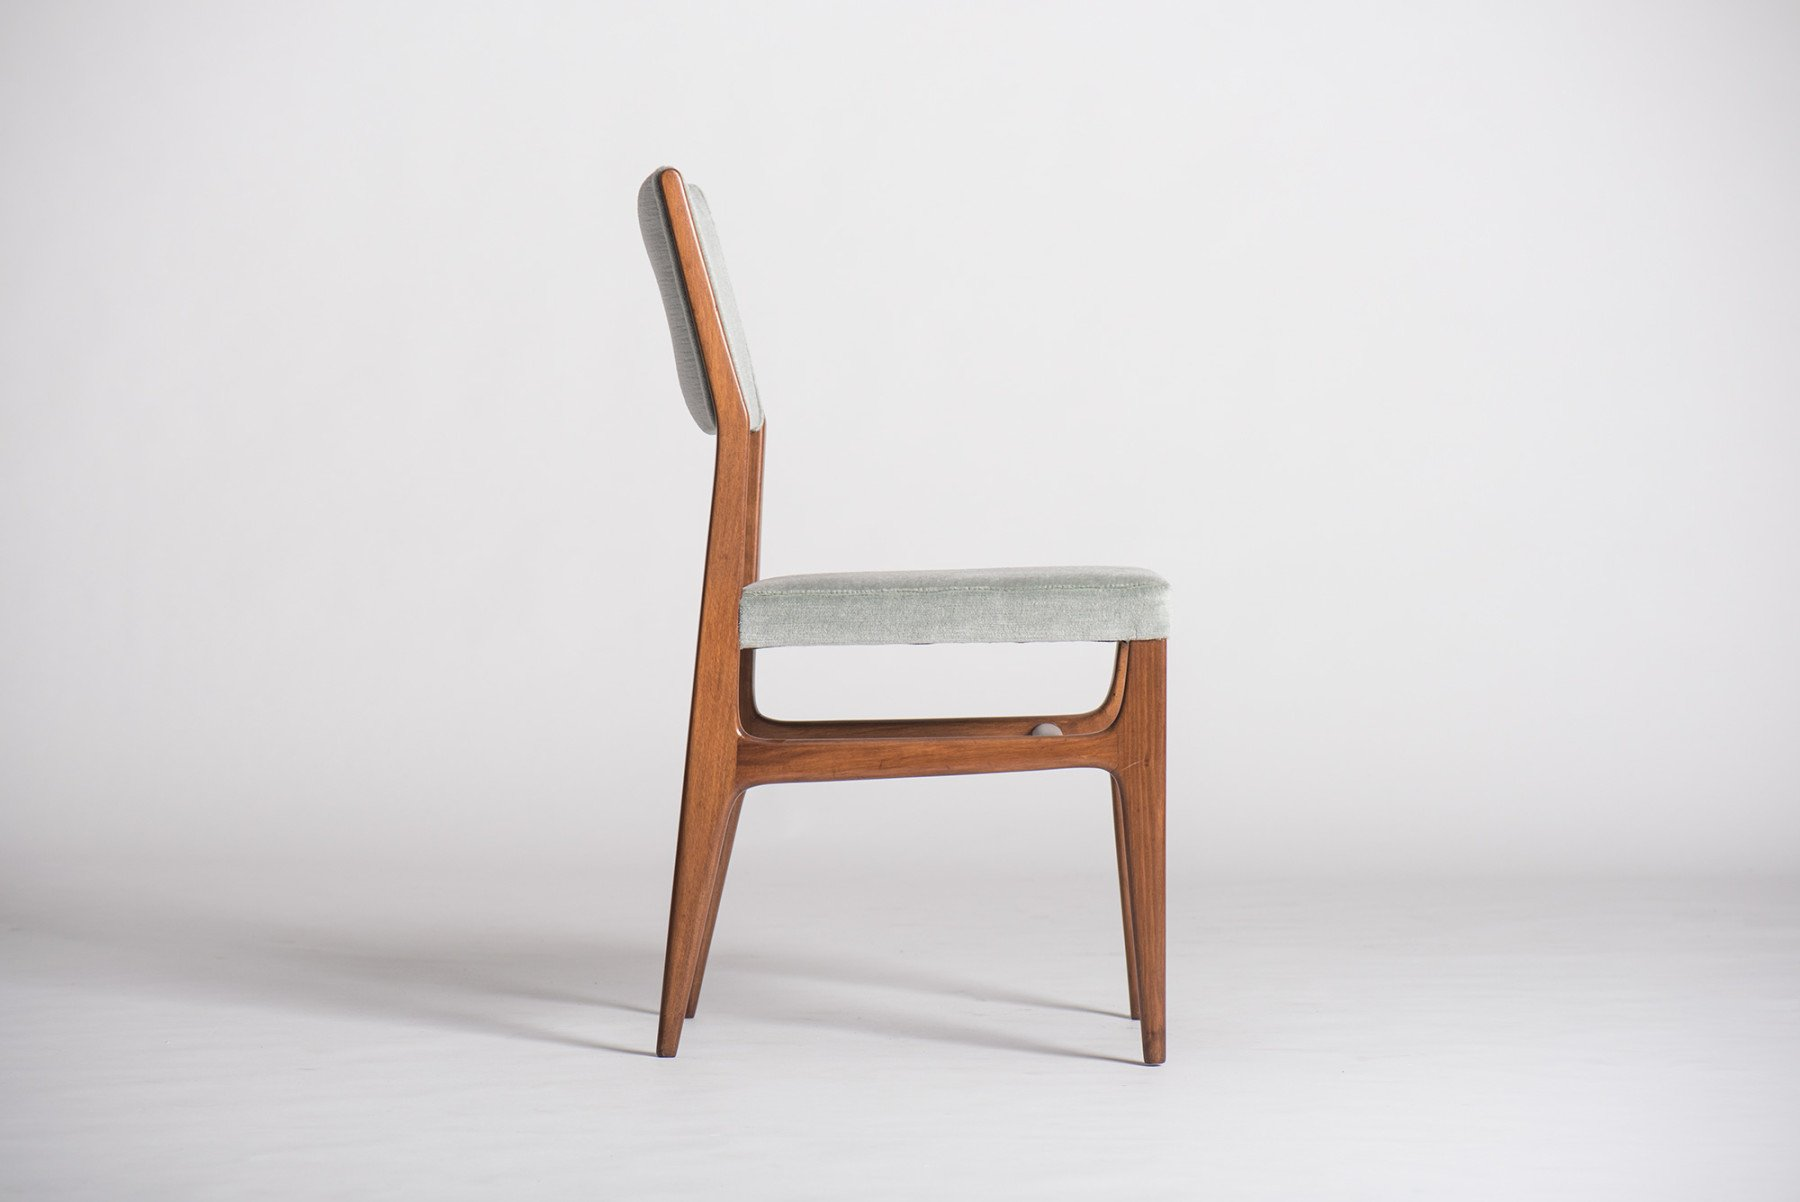 Gio Ponti dining chair model 111 at design and art gallery Casati Gallery